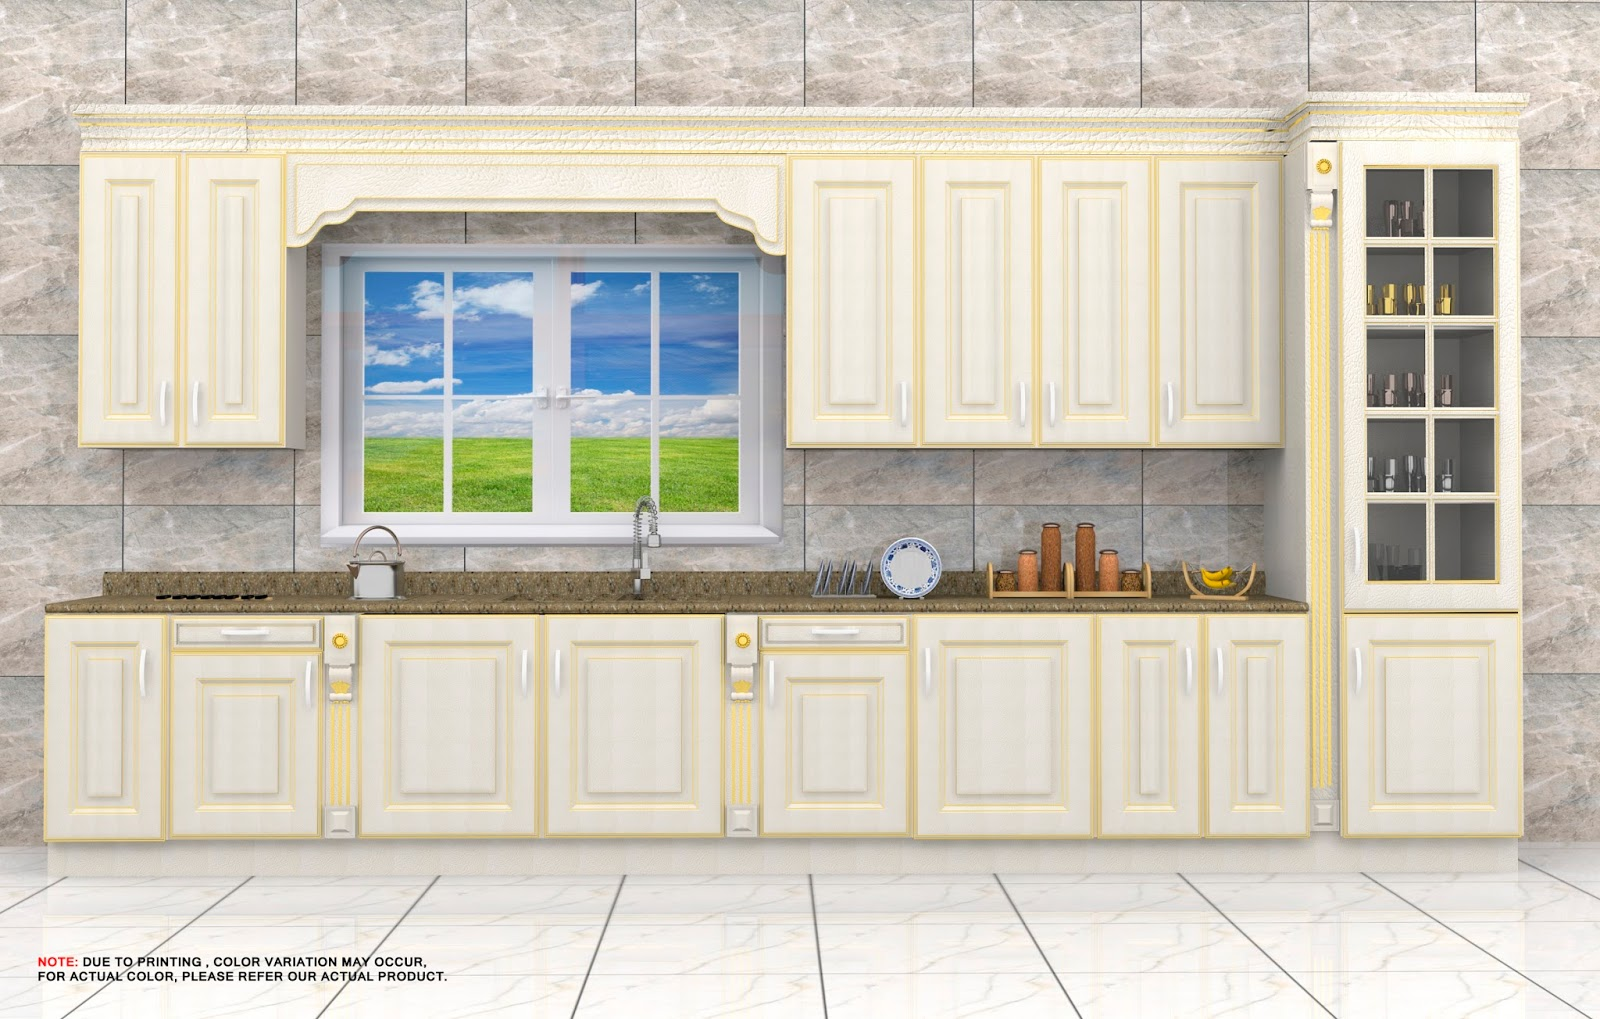 qdesignfactory: classic golden and crack kitchen design